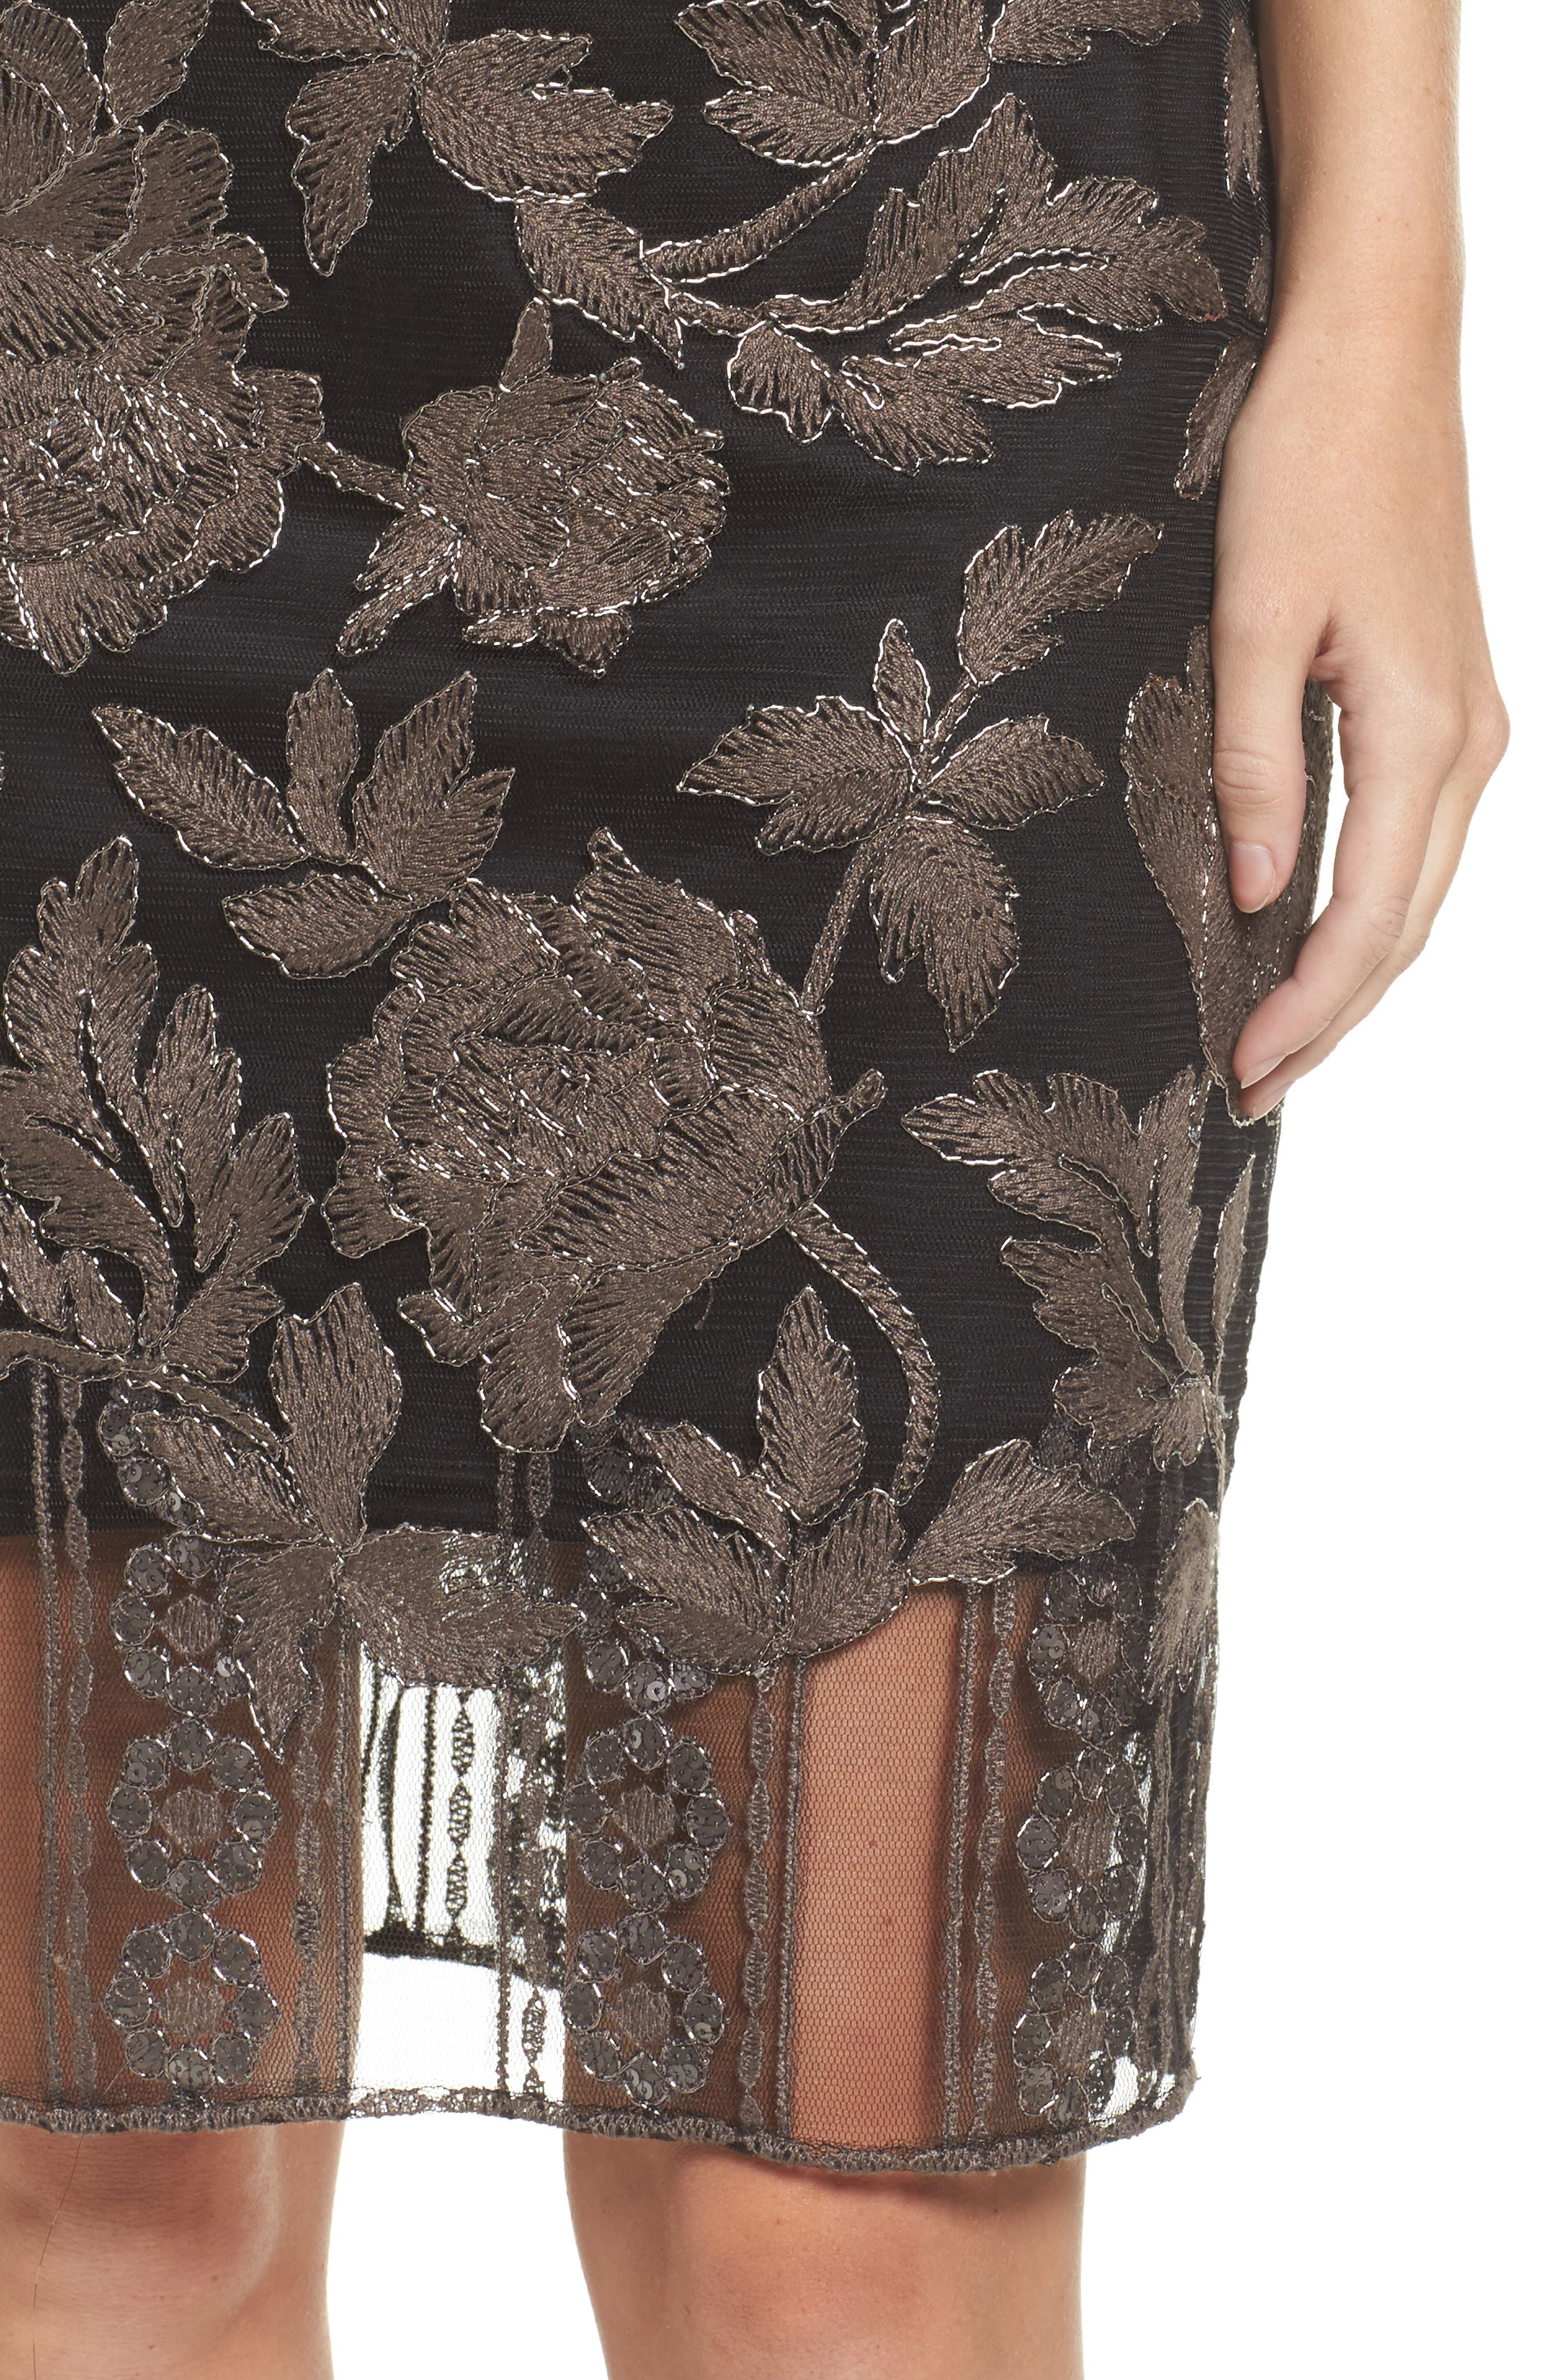 Embroidered Lace Sheath Dress,                             Alternate thumbnail 4, color,                             Dark Pearl/ Black